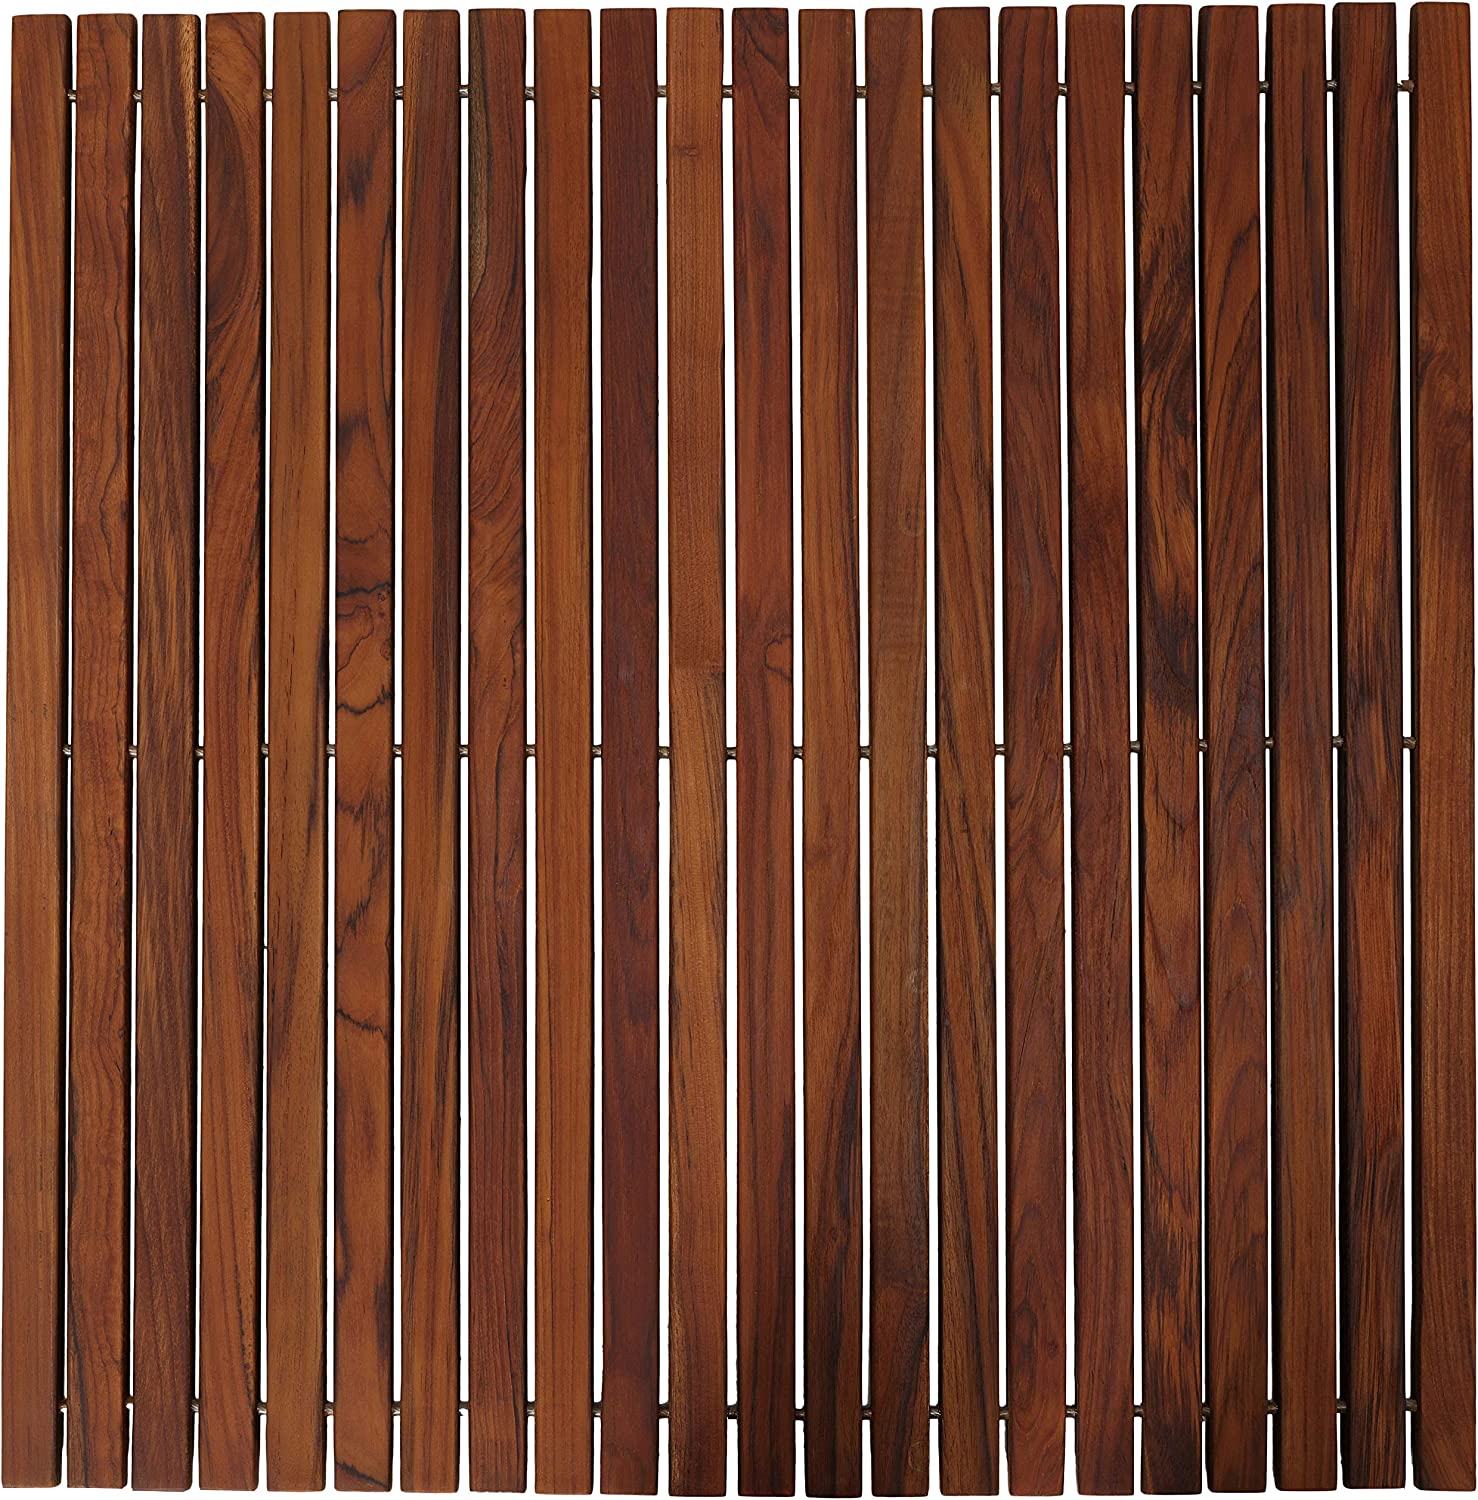 Bare Decor Fuji String Spa Shower Mat in Solid Teak Wood Oiled Finish. XL Square 30  x 30